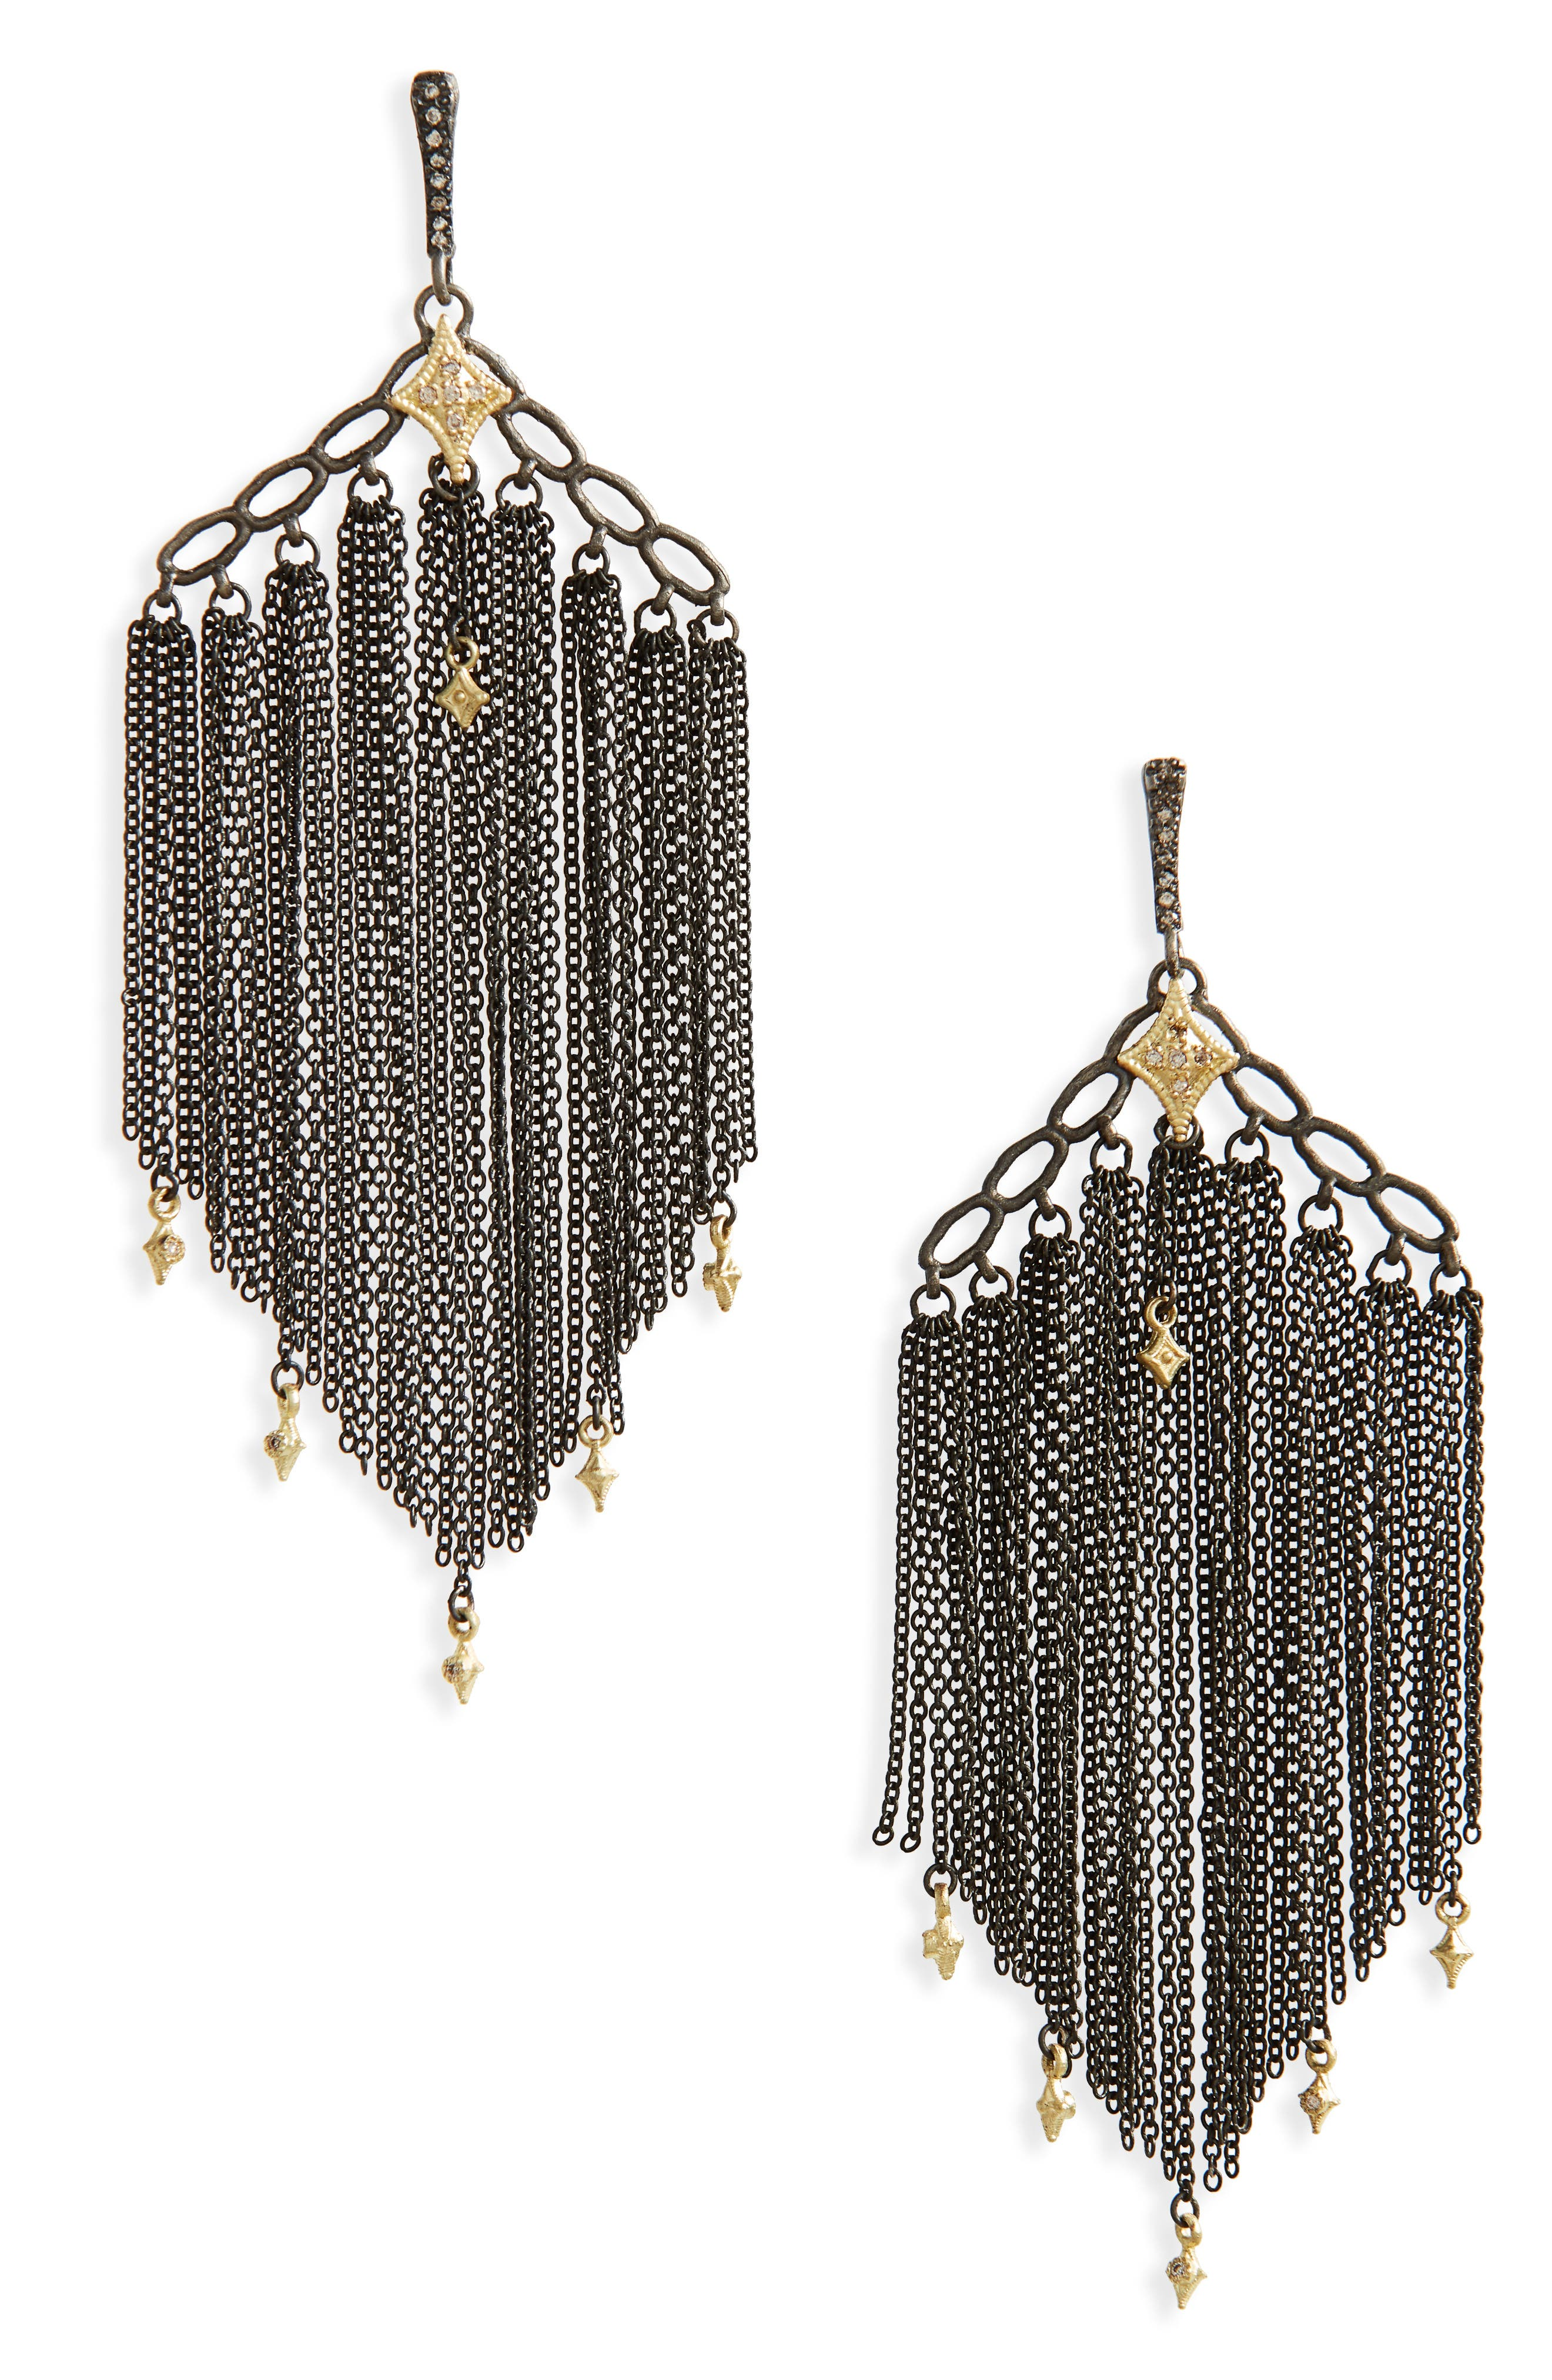 Old World Crivelli Chain Earrings,                         Main,                         color, Blackened Silver/ Diamonds